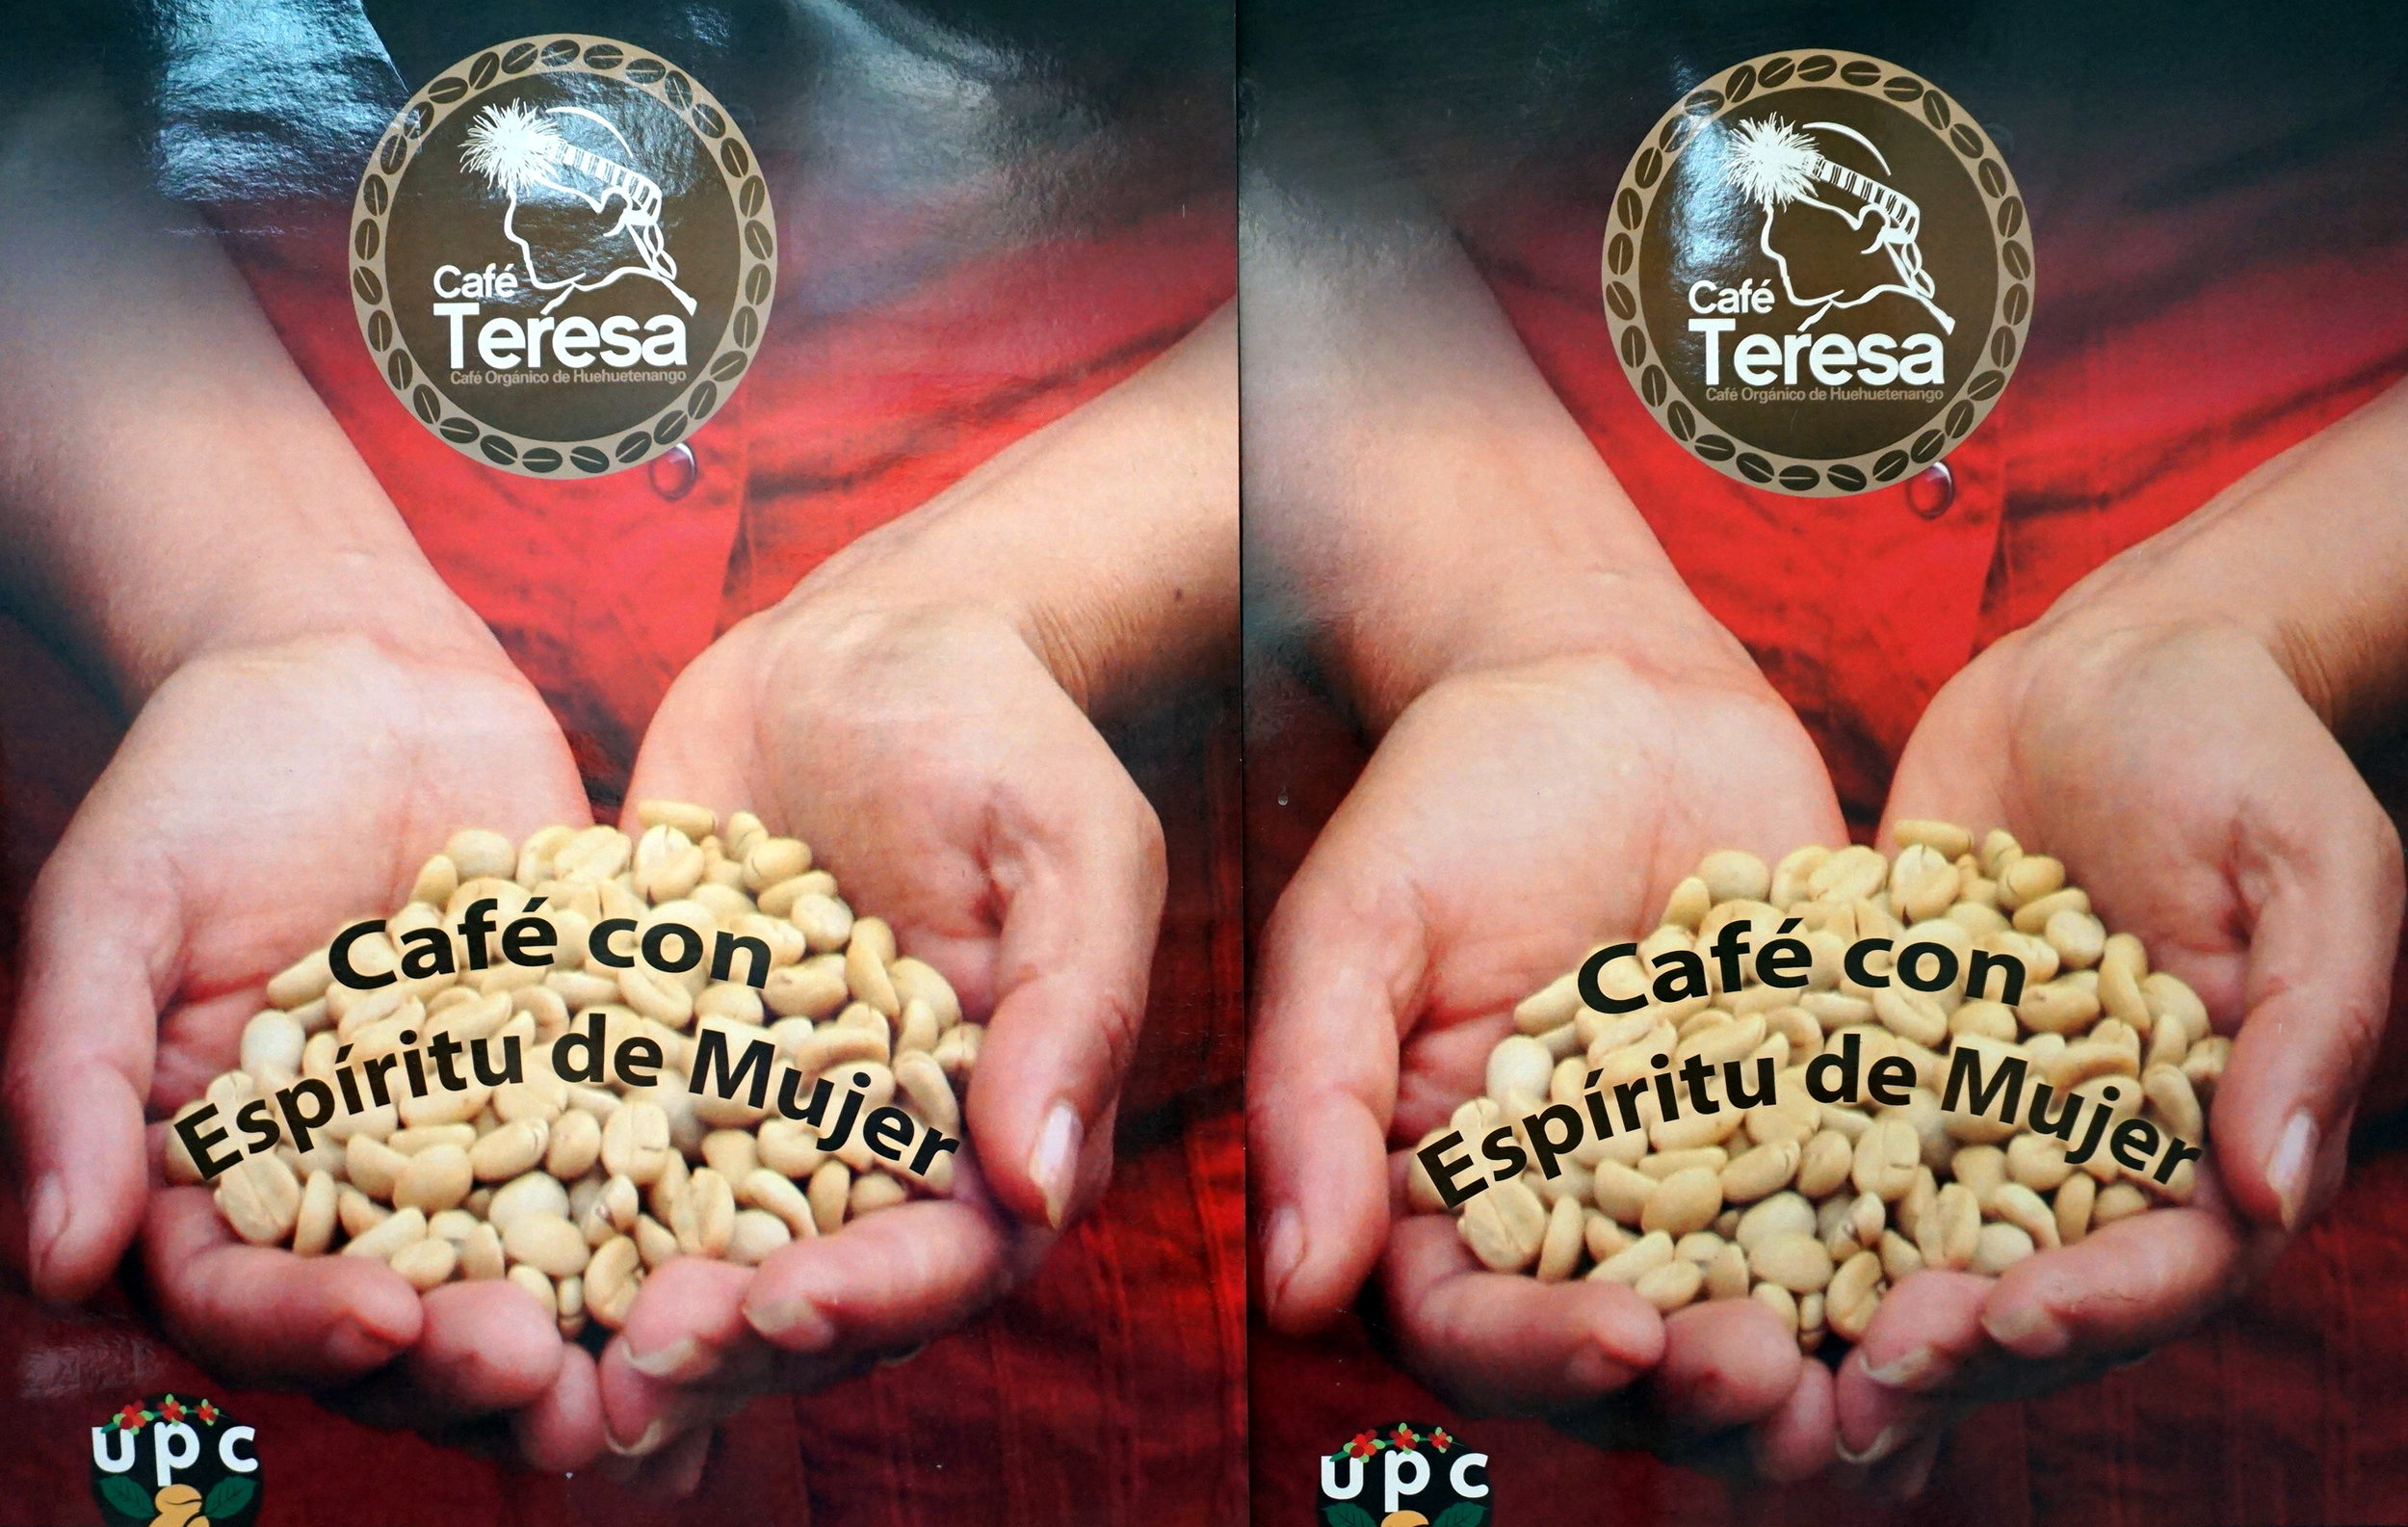 UPC's women's group sells their own branded coffee.